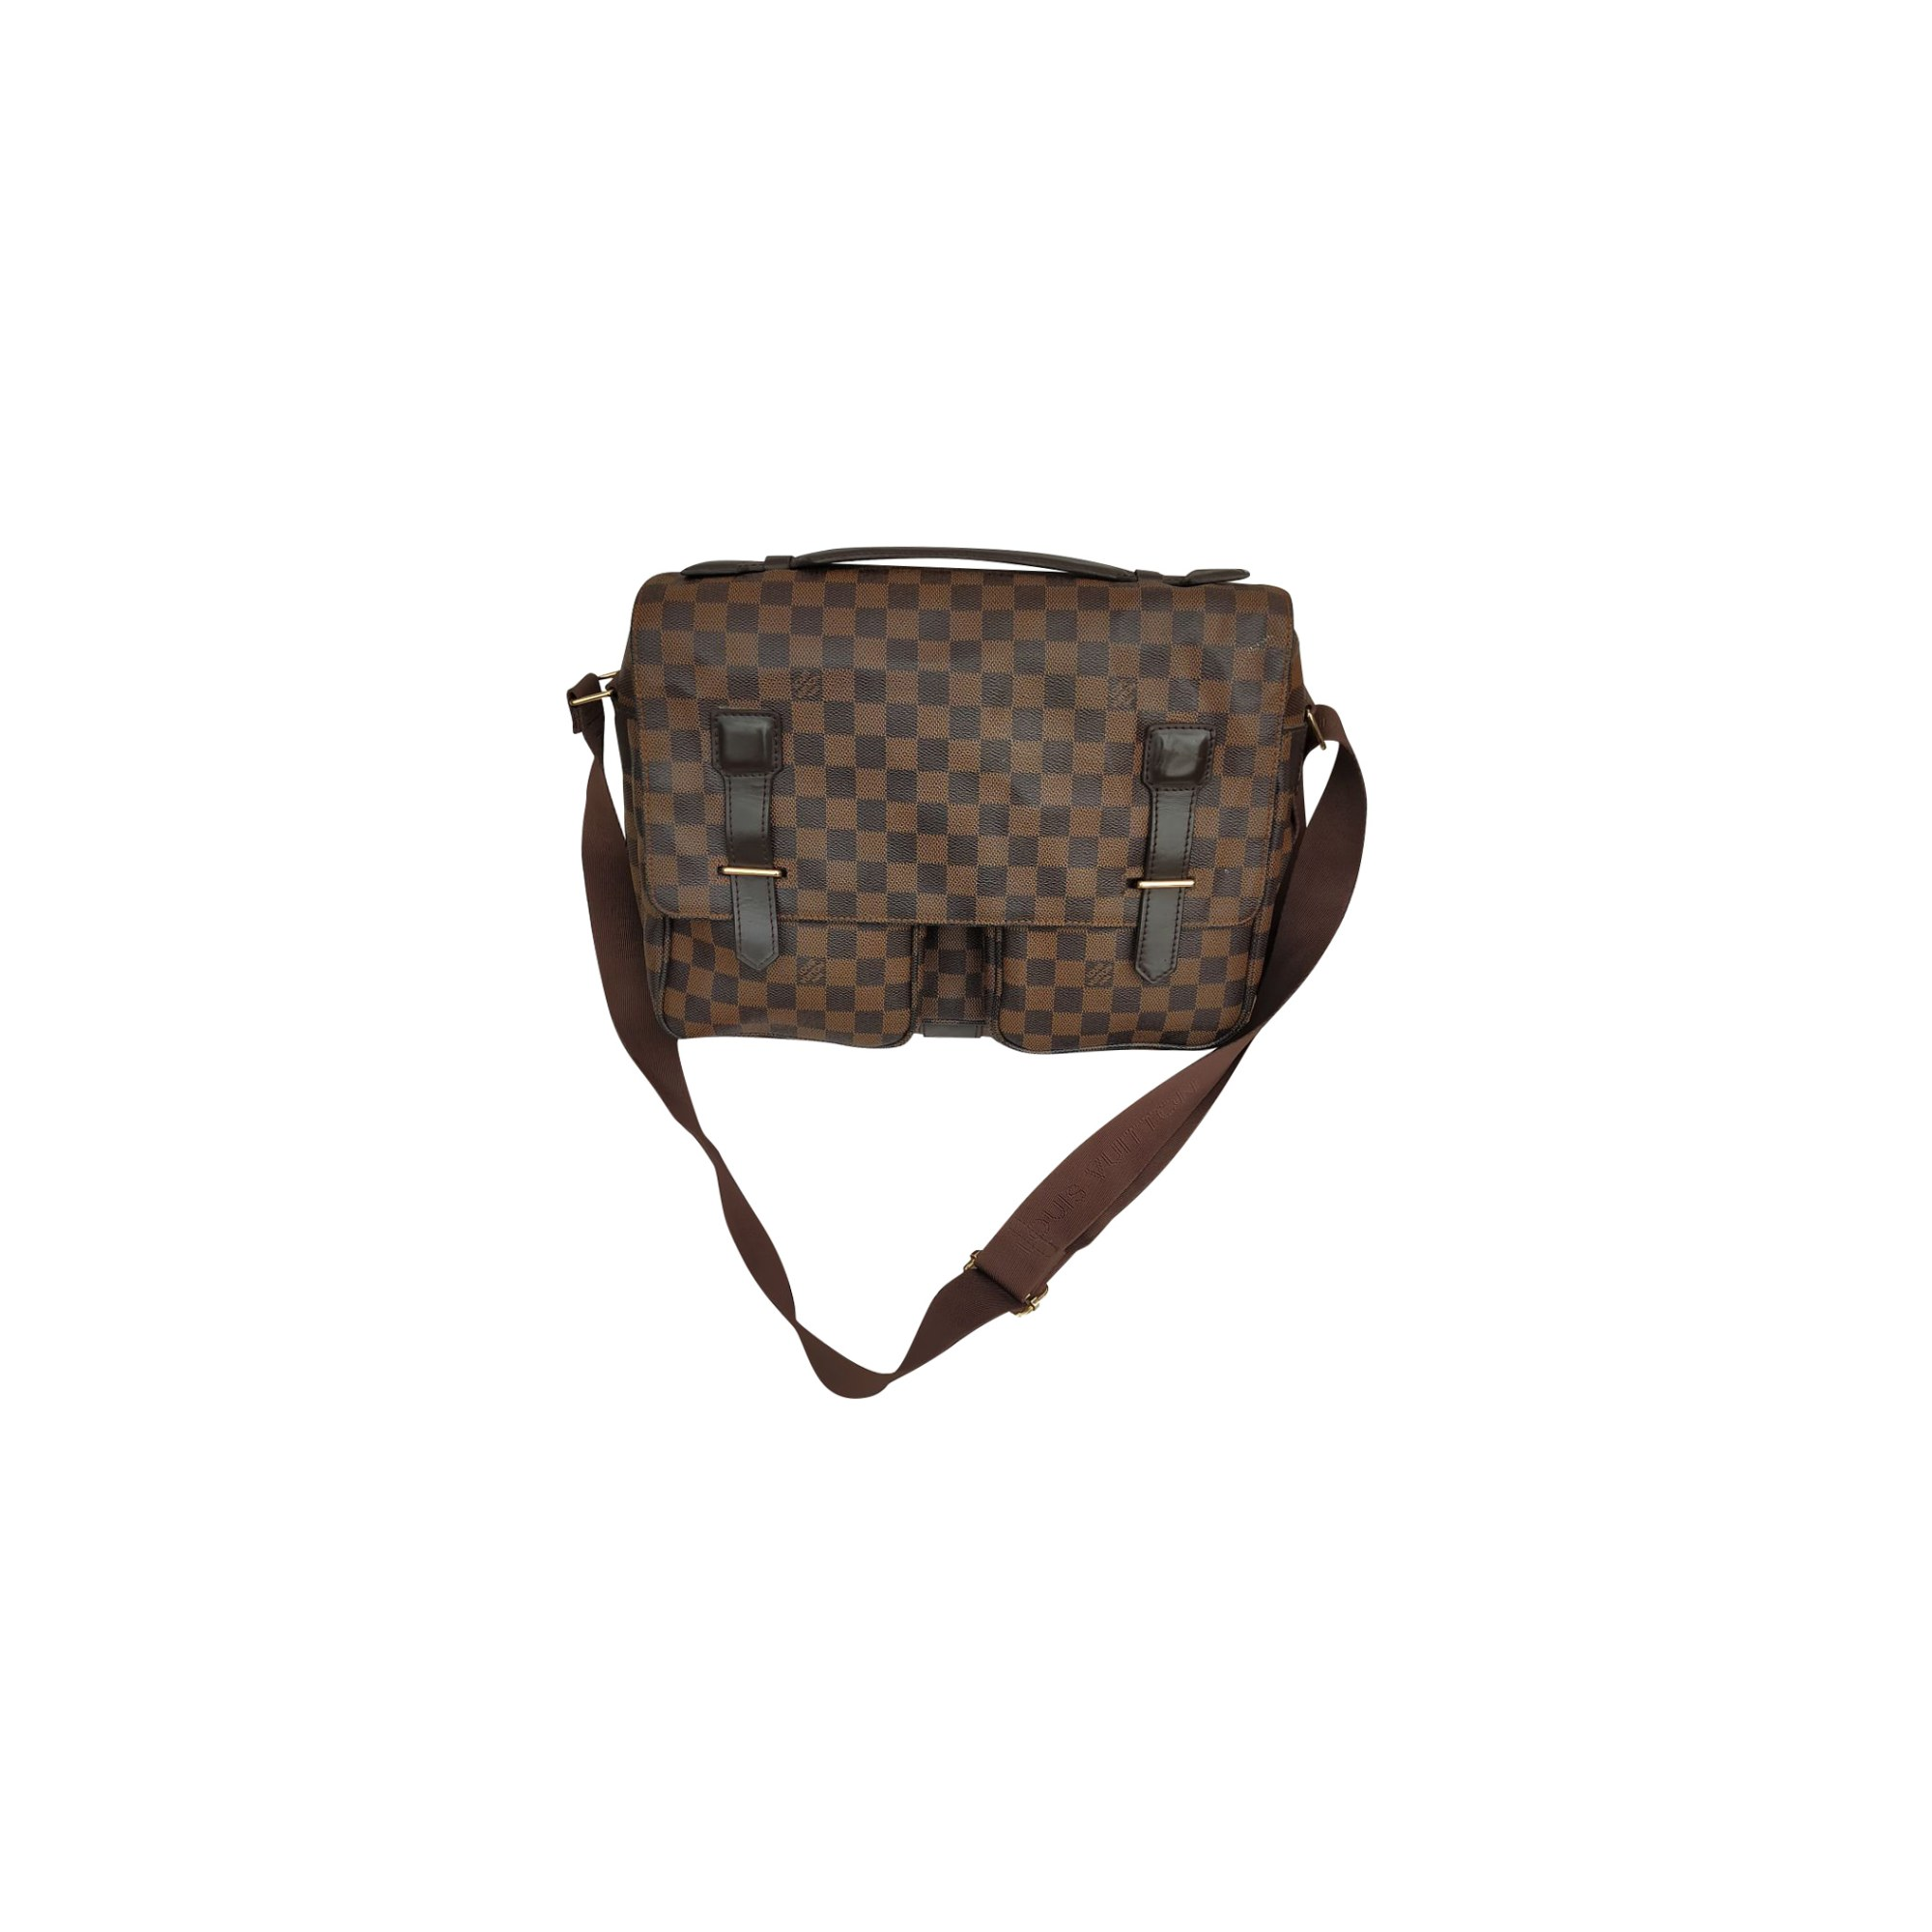 Handkoffer LOUIS VUITTON Gold, Bronze, Kupfer